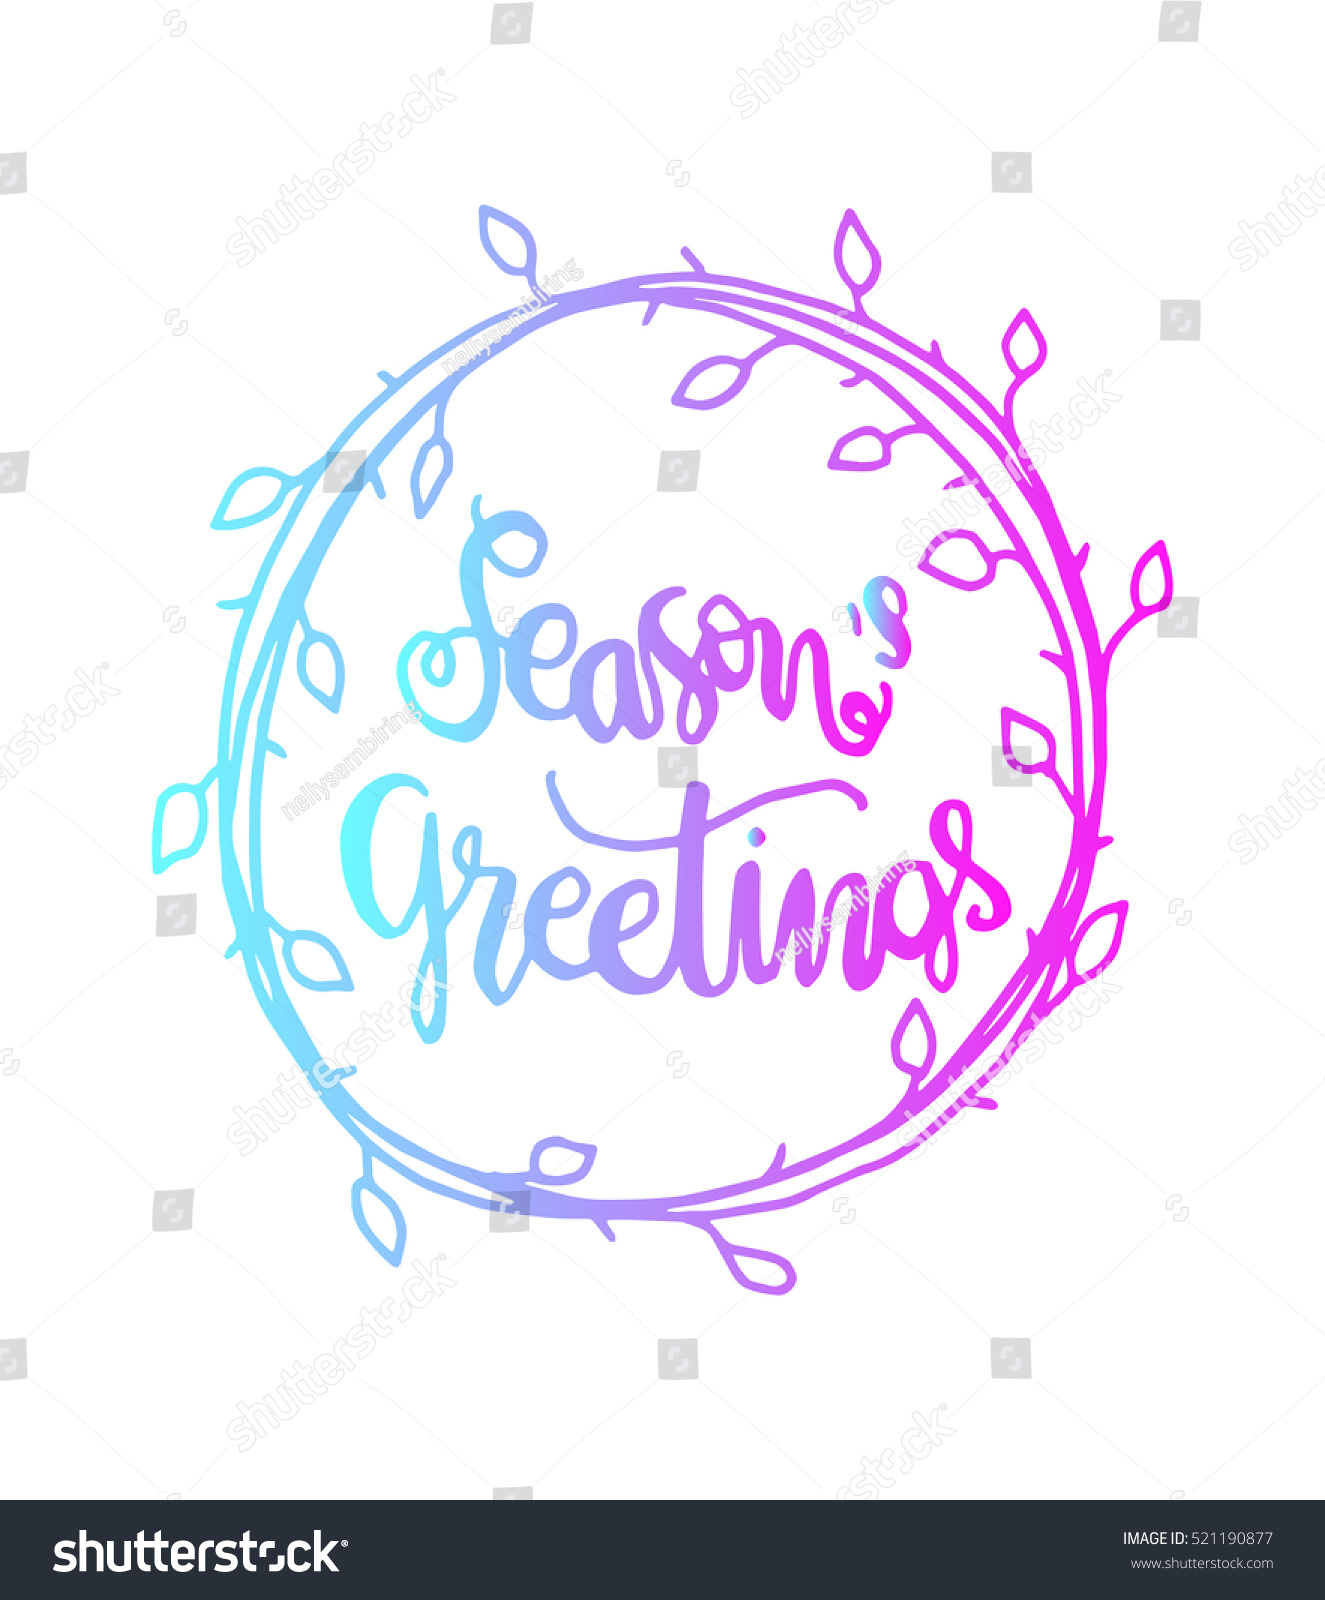 Seasons greetings hand lettered quote bible stock vector 521190877 seasons greetings hand lettered quote bible verse modern calligraphy kristyandbryce Gallery